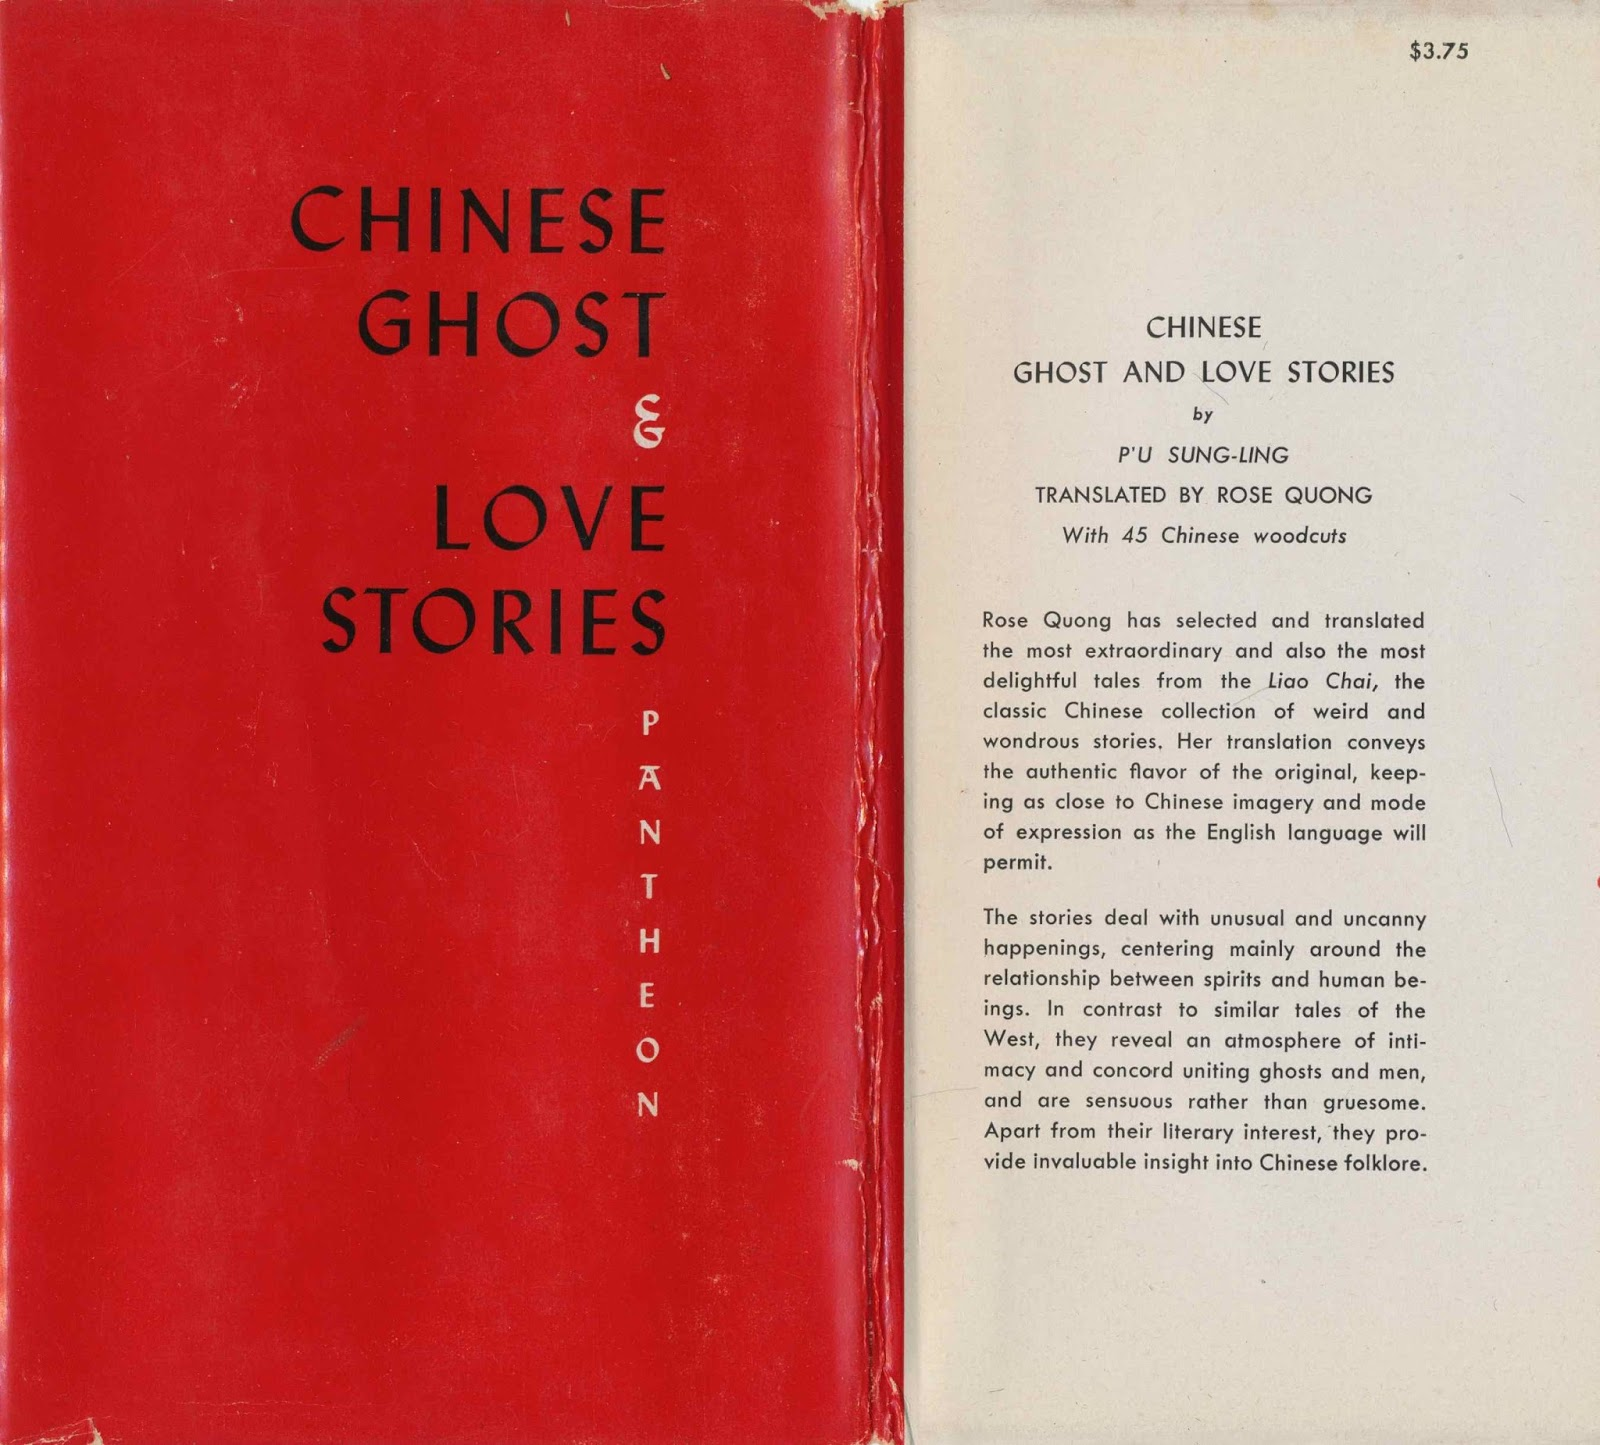 an analysis of chinese love story Love story - chapter 2 summary & analysis erich segal this study guide consists of approximately 39 pages of chapter summaries, quotes, character analysis, themes, and more - everything you need to sharpen your knowledge of love story.